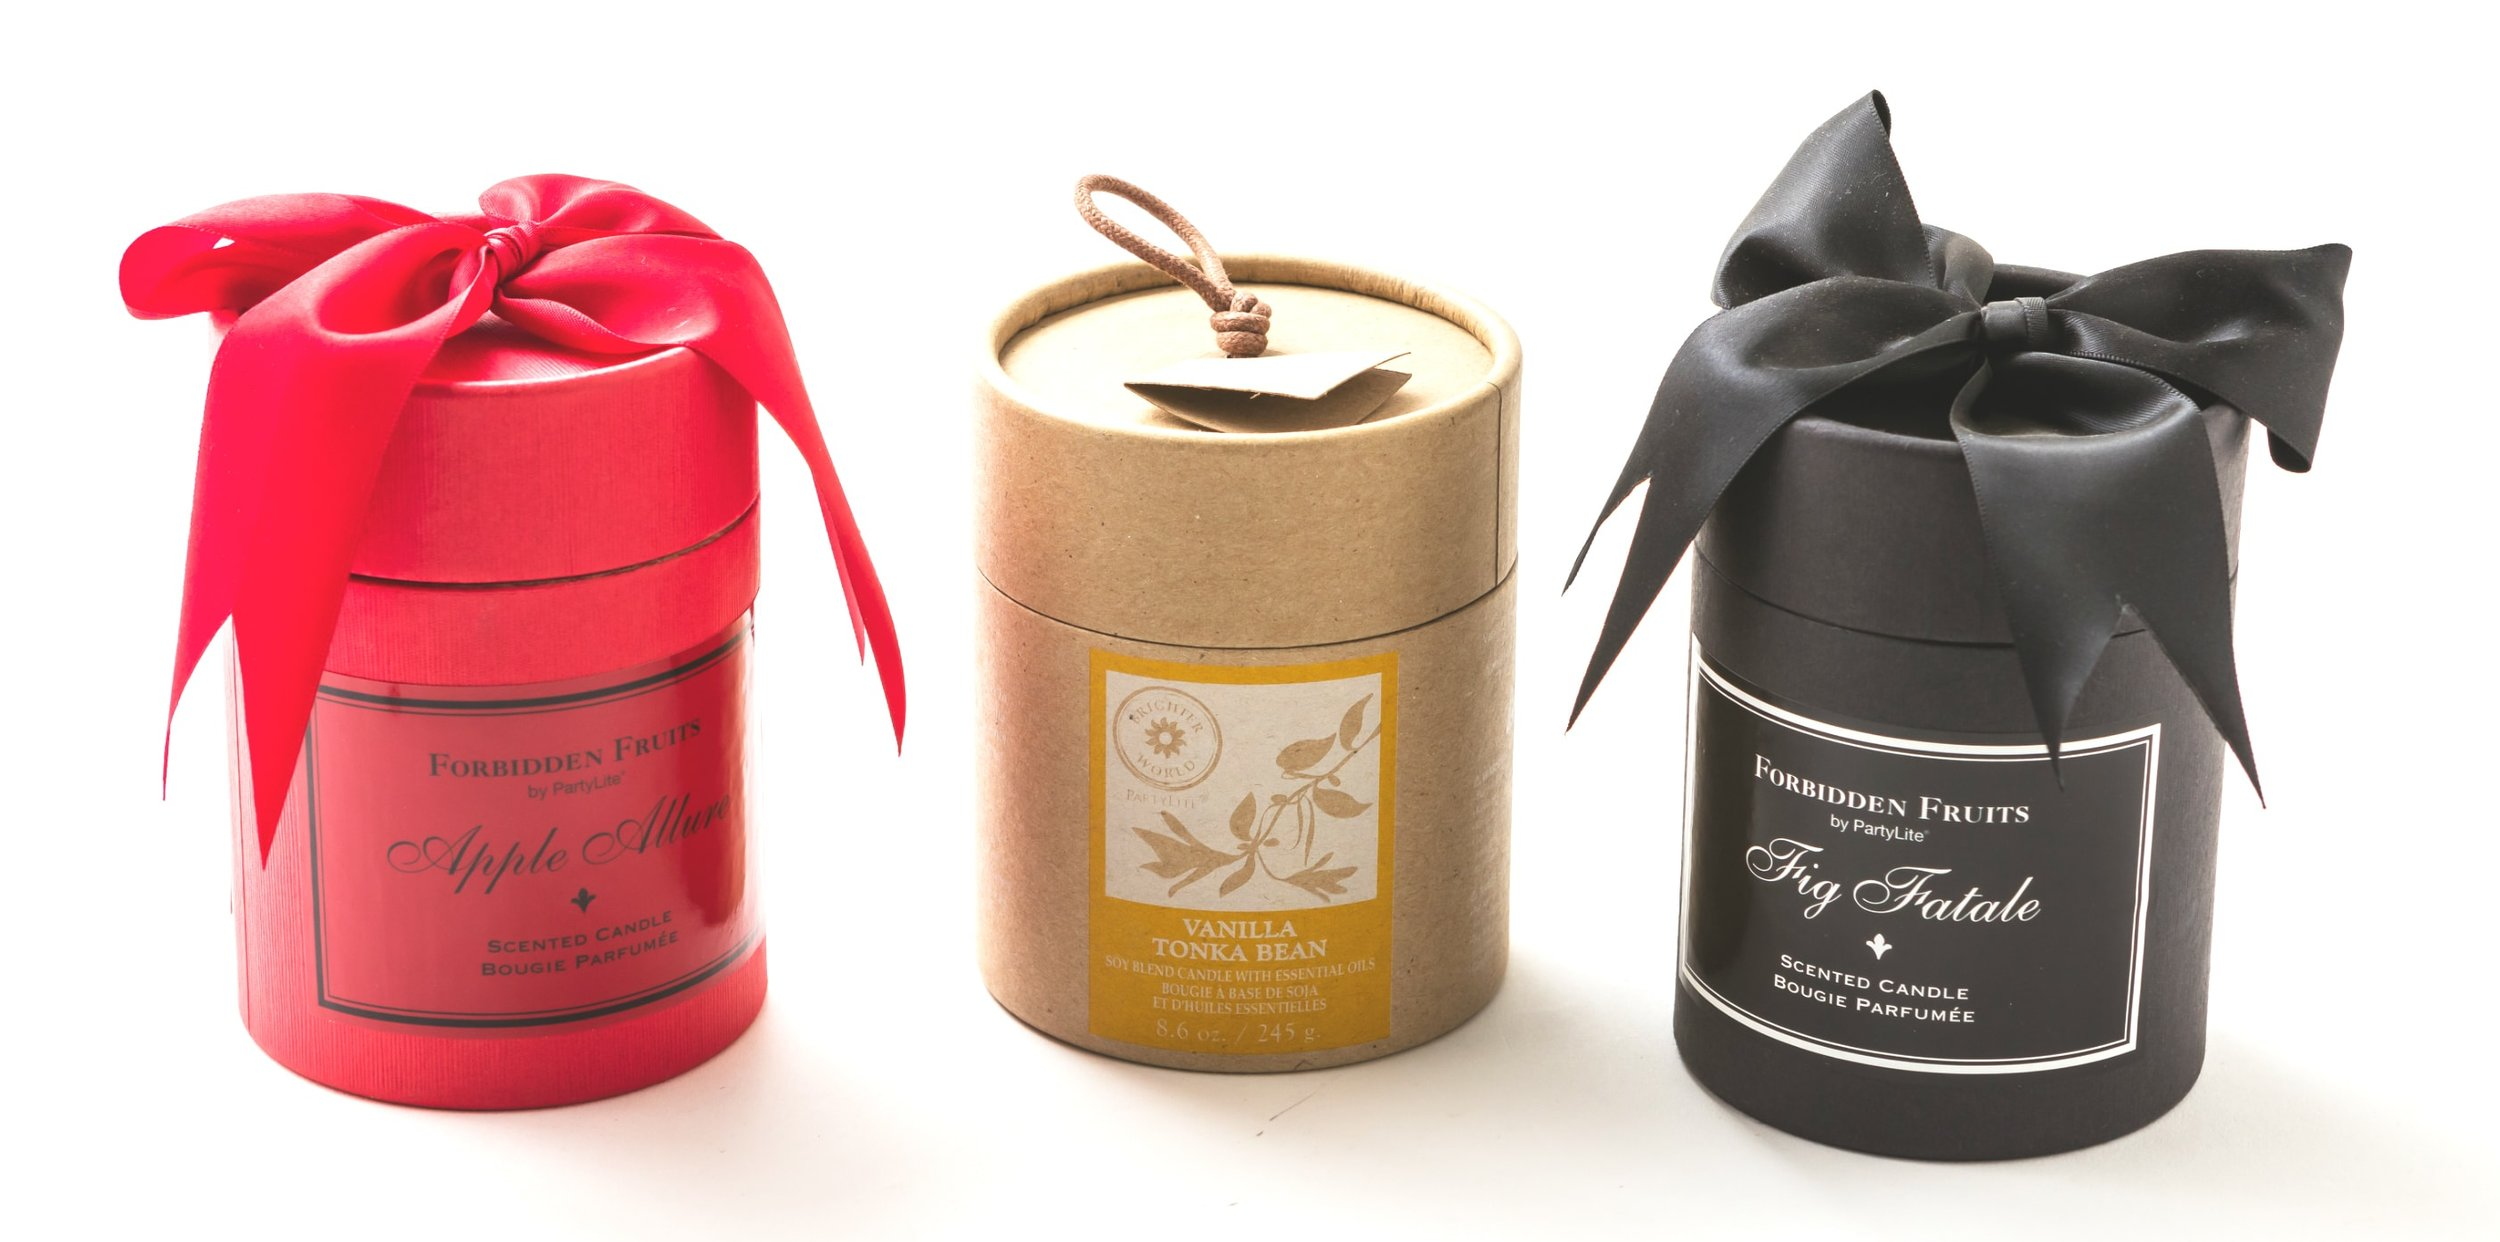 Candle_Packaging-min.jpg